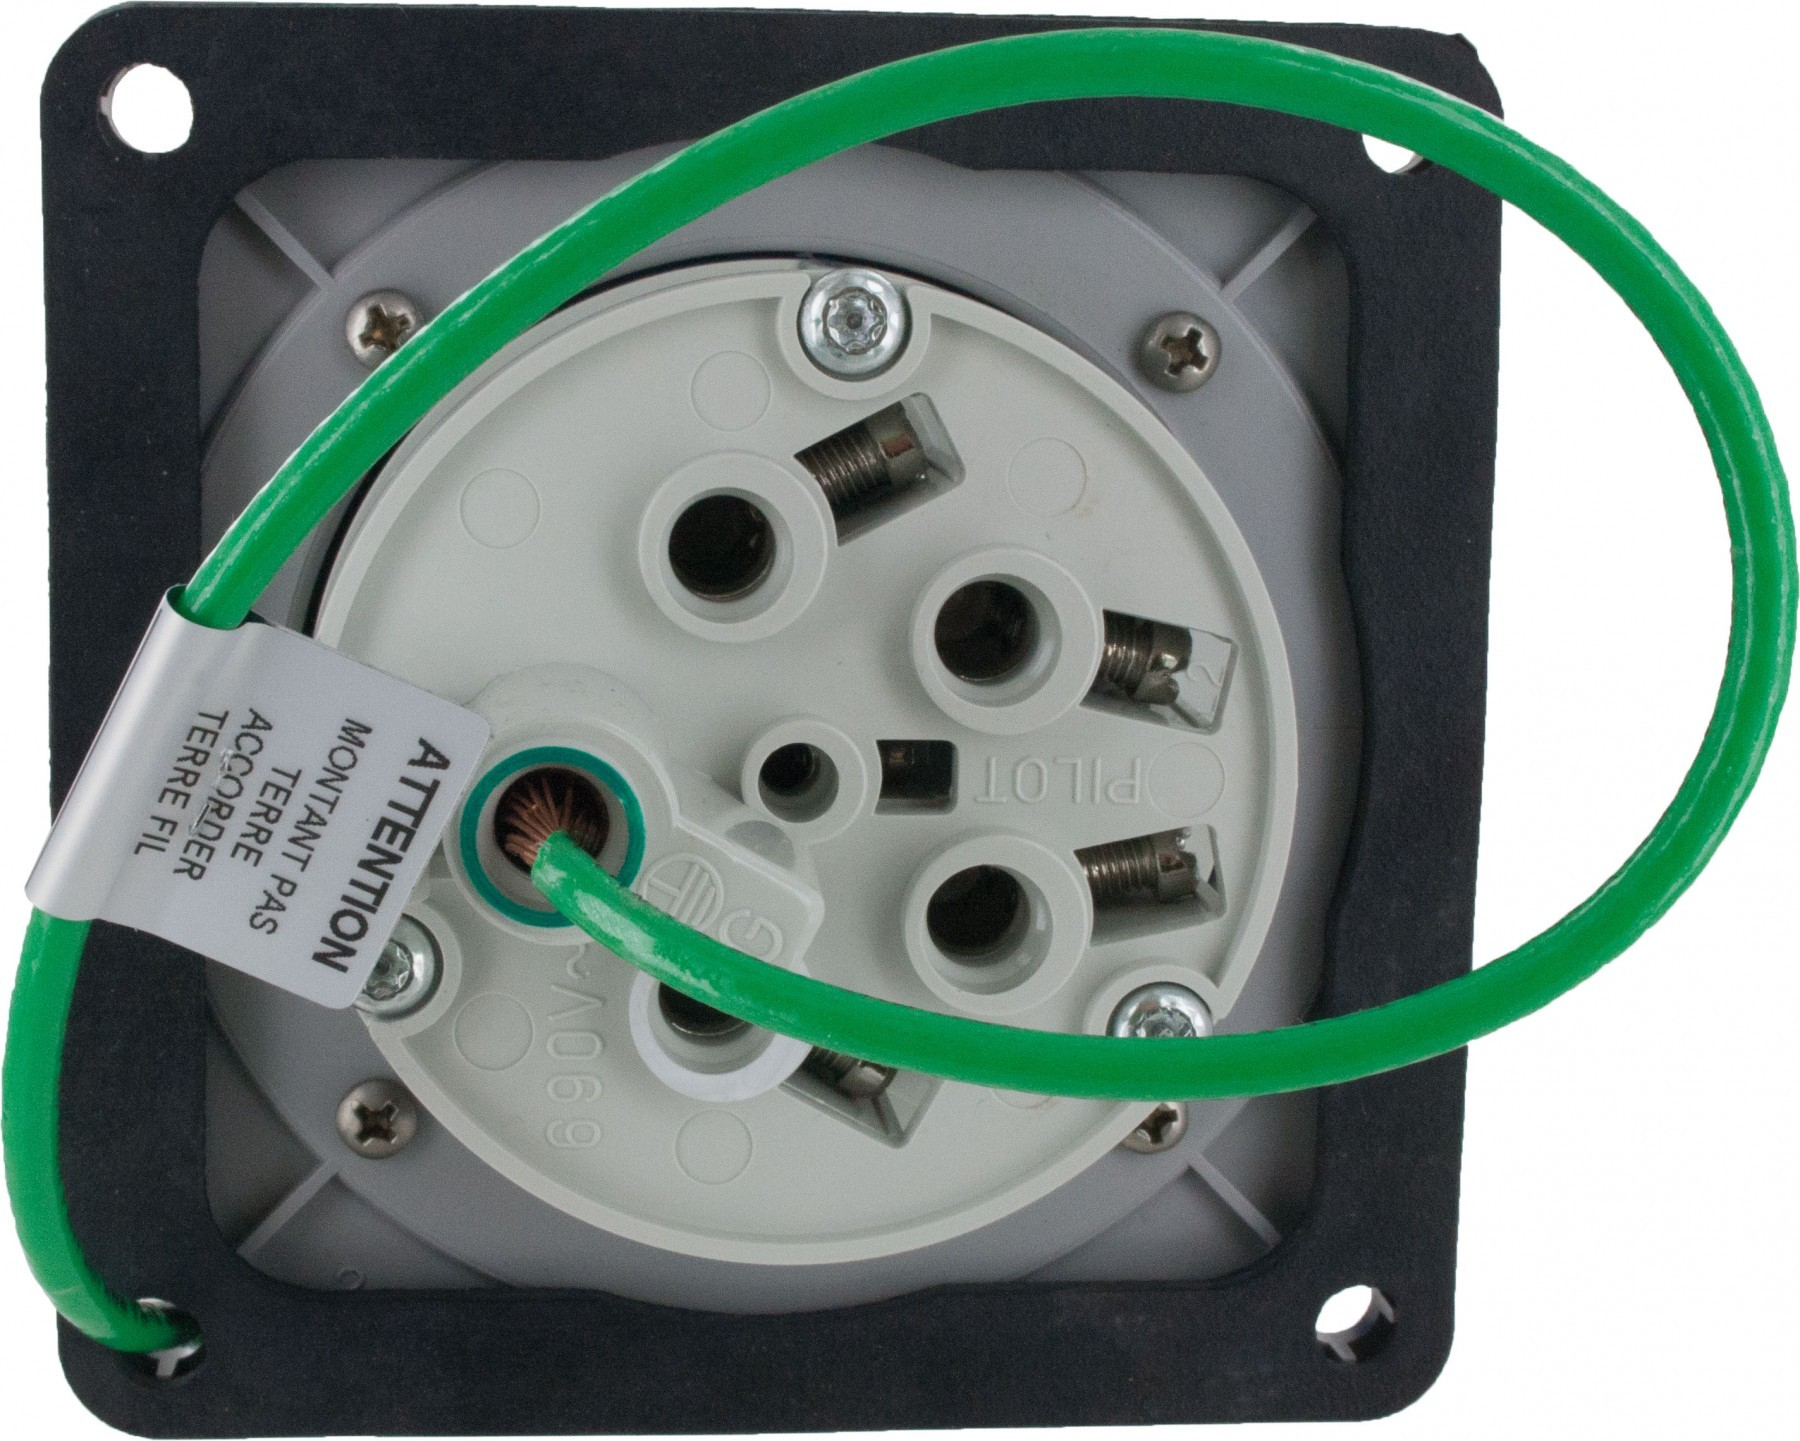 How to Wire 3 Phase 60 Amp Disconnect 560b9w Pin and Sleeve Inlet 60 Amp Of How to Wire 3 Phase 60 Amp Disconnect